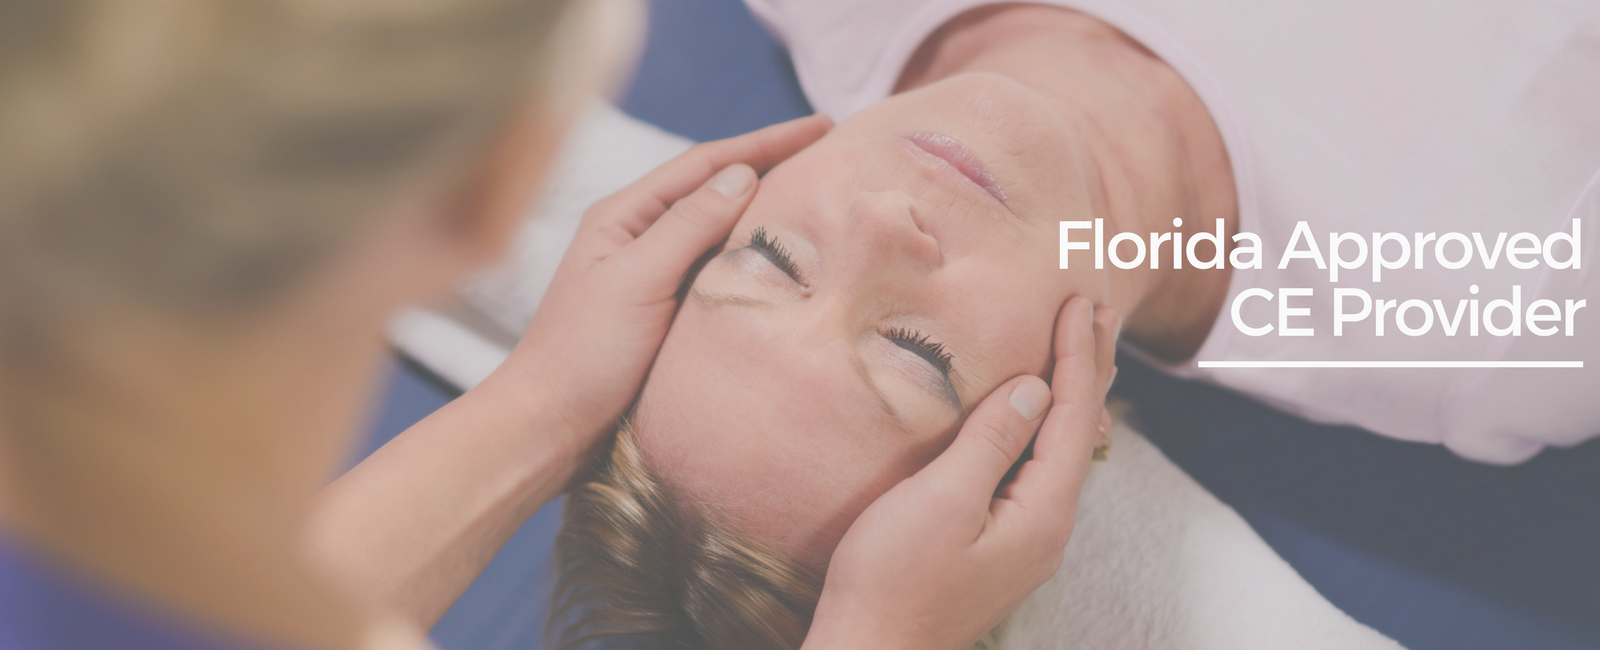 Reiki Certification St Petersburg Tampa Reiki Training Florida